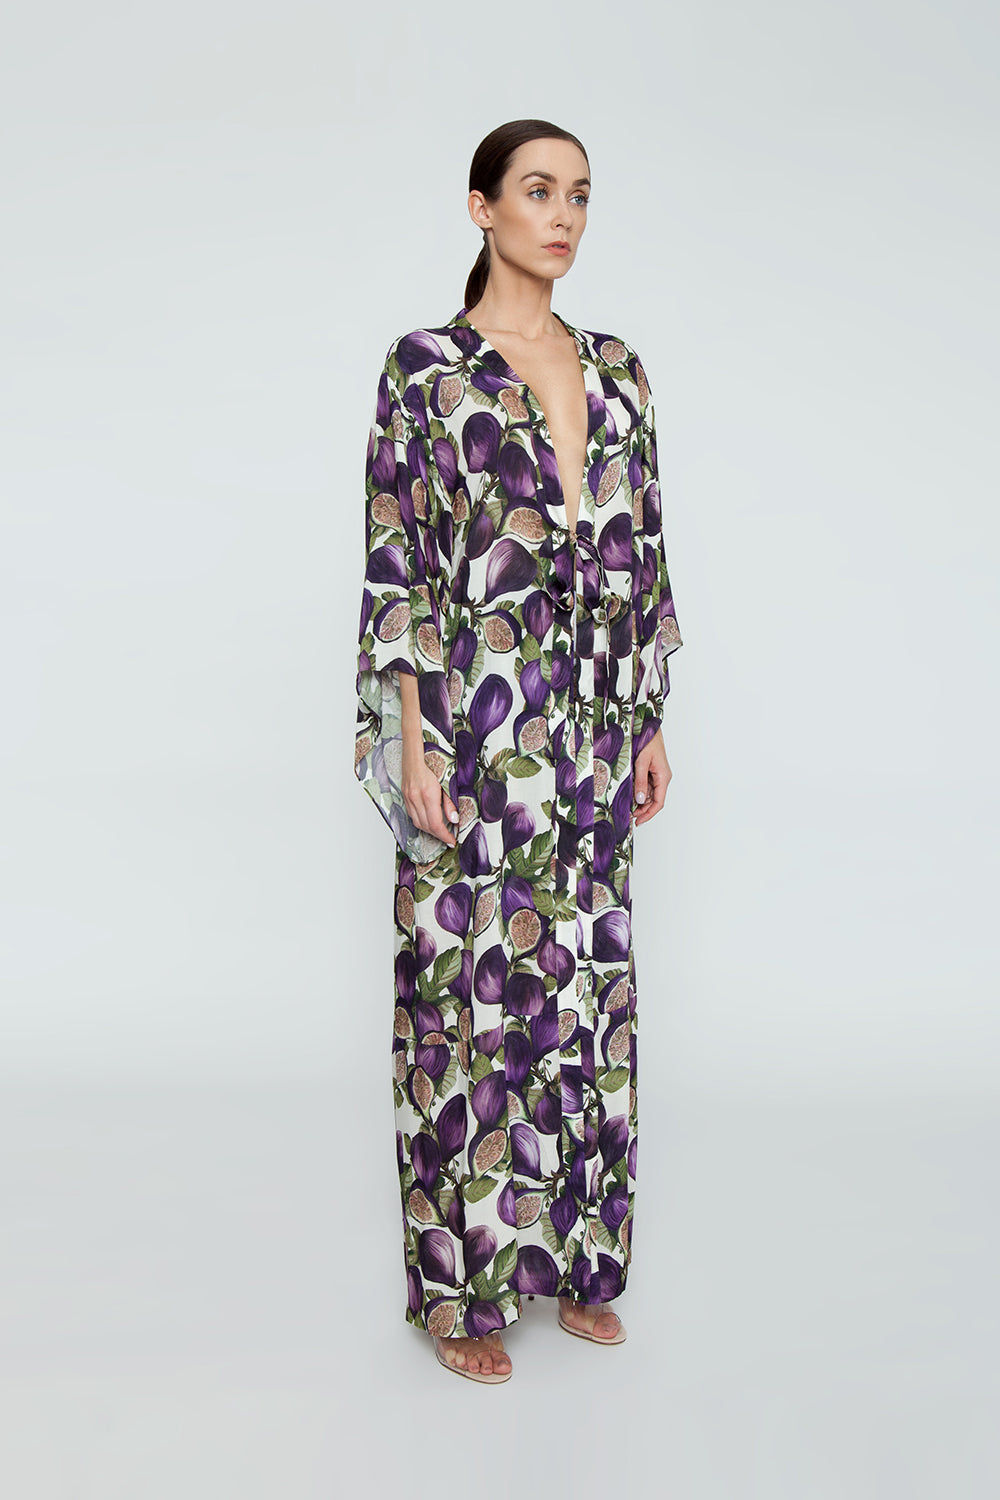 ADRIANA DEGREAS Silk Long Robe Cover-Up - Fig Purple Print Cover Up | Fig Purple Print|Adriana Degreas Long Robe - Fig Purple Print   Long sleeve robe Floor length robe Tie waist detail  Side View